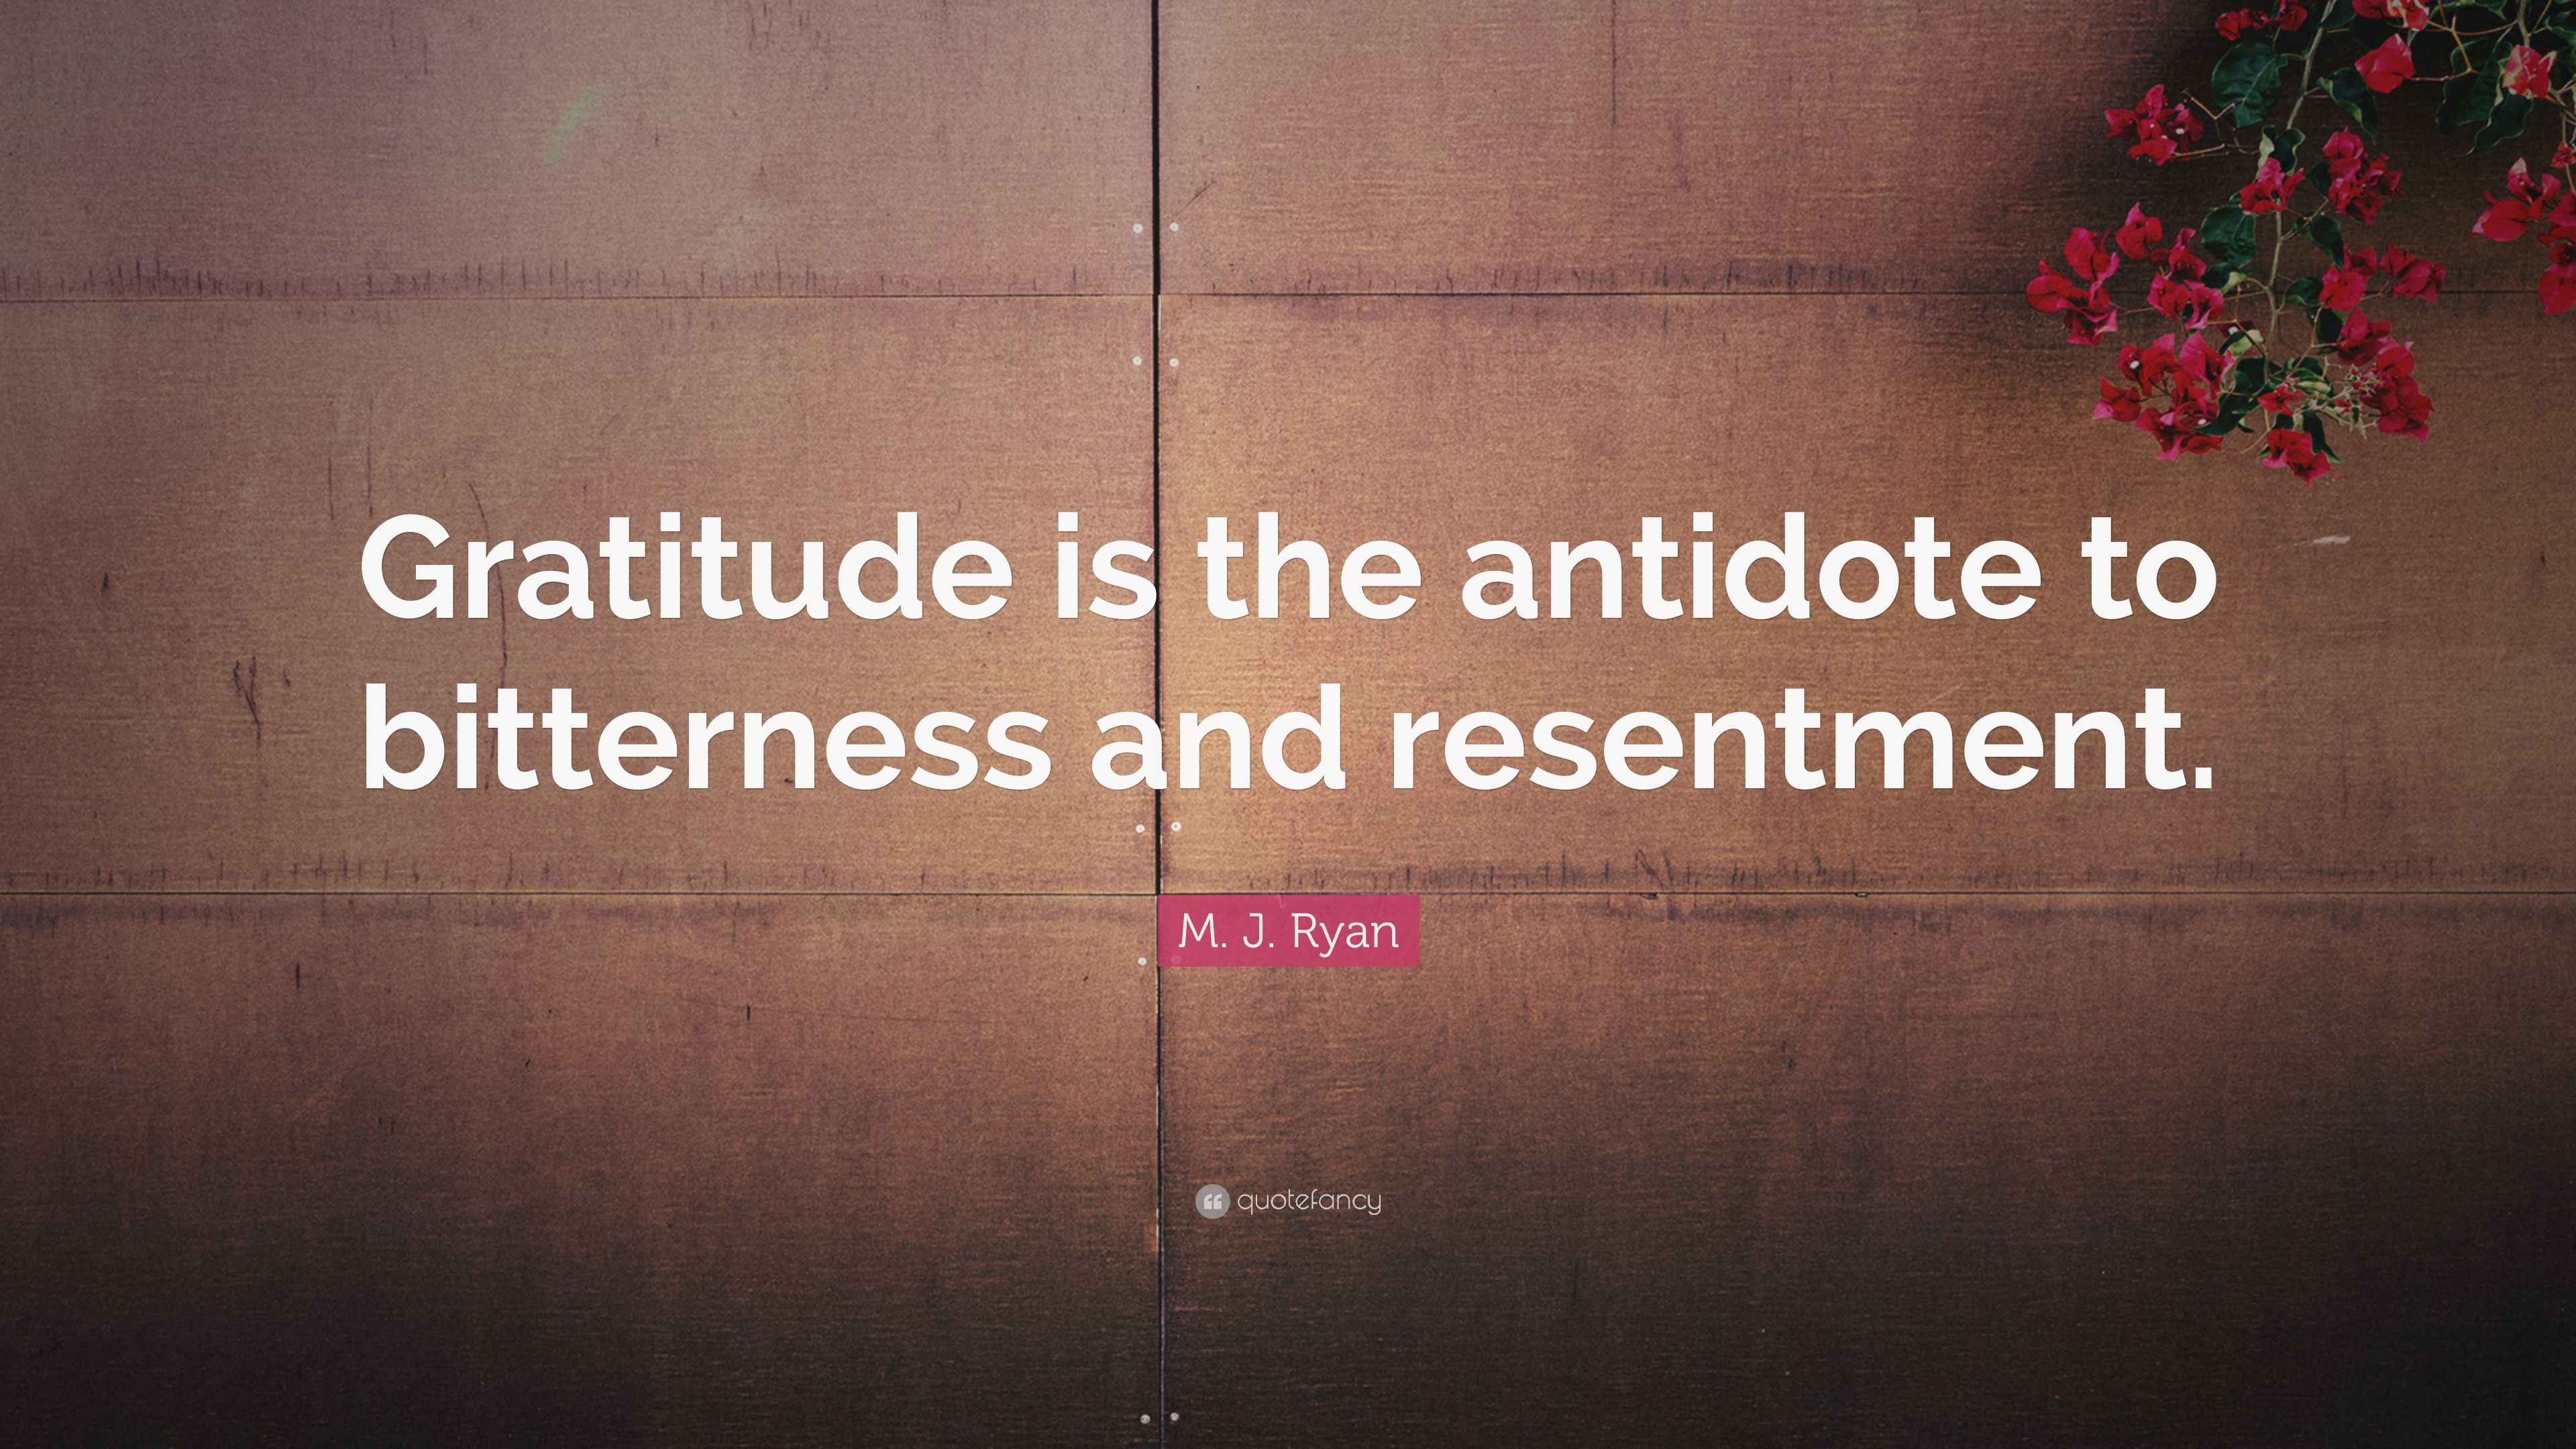 quotes about bitterness and resentment